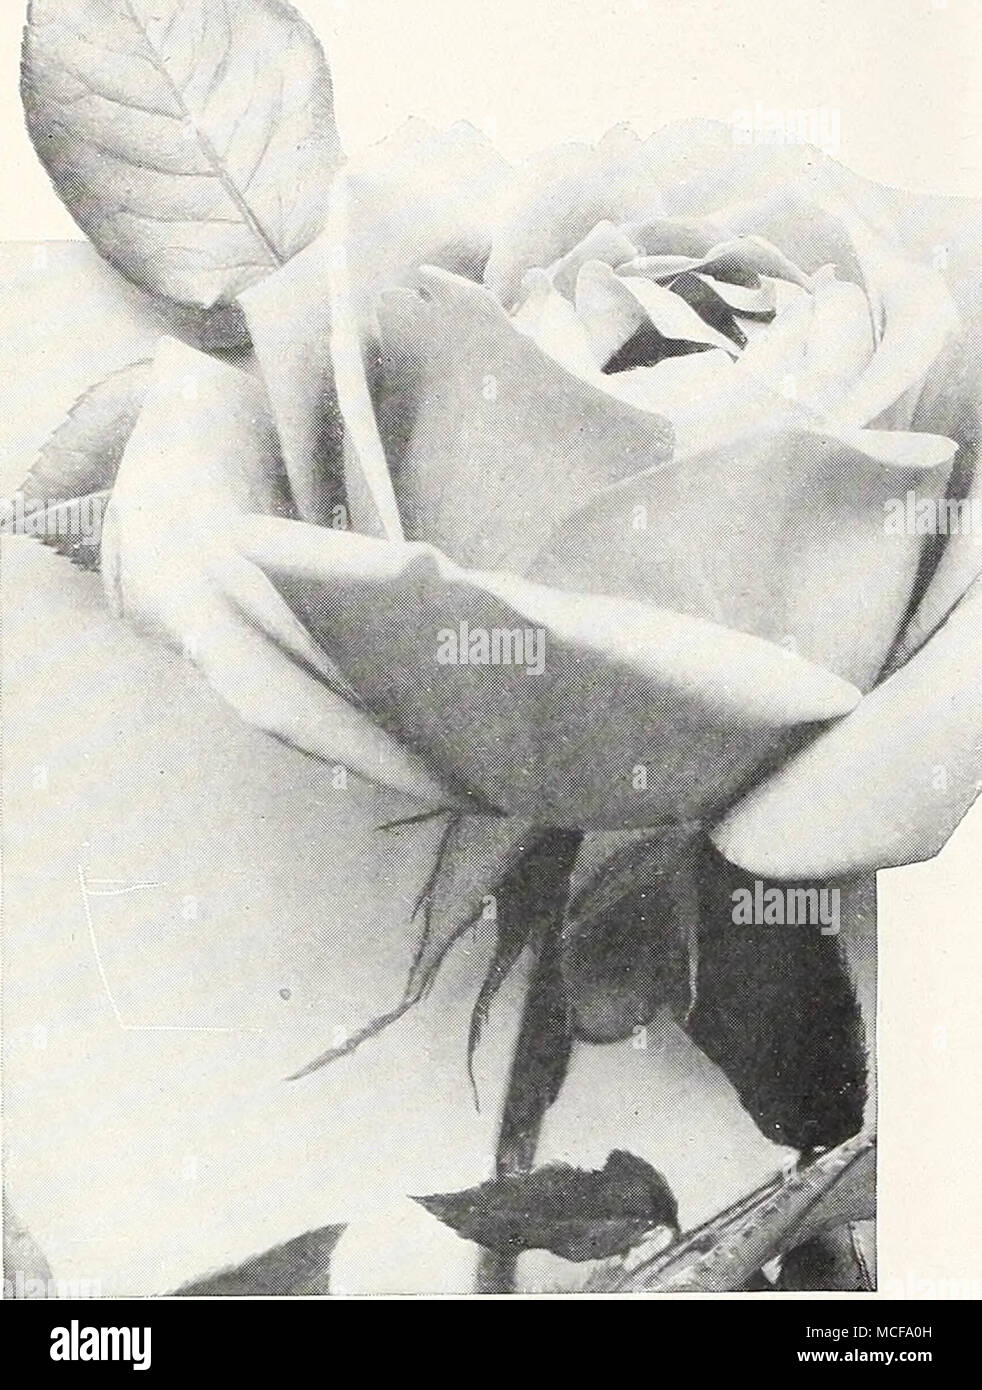 Hybrid tea rose president cherioux select hybrid tea roses mme a beautiful and much admired light pink shaded salmon and carmine buds of splendid form fine for cutting mme butterfly beautiful buds and flowers izmirmasajfo